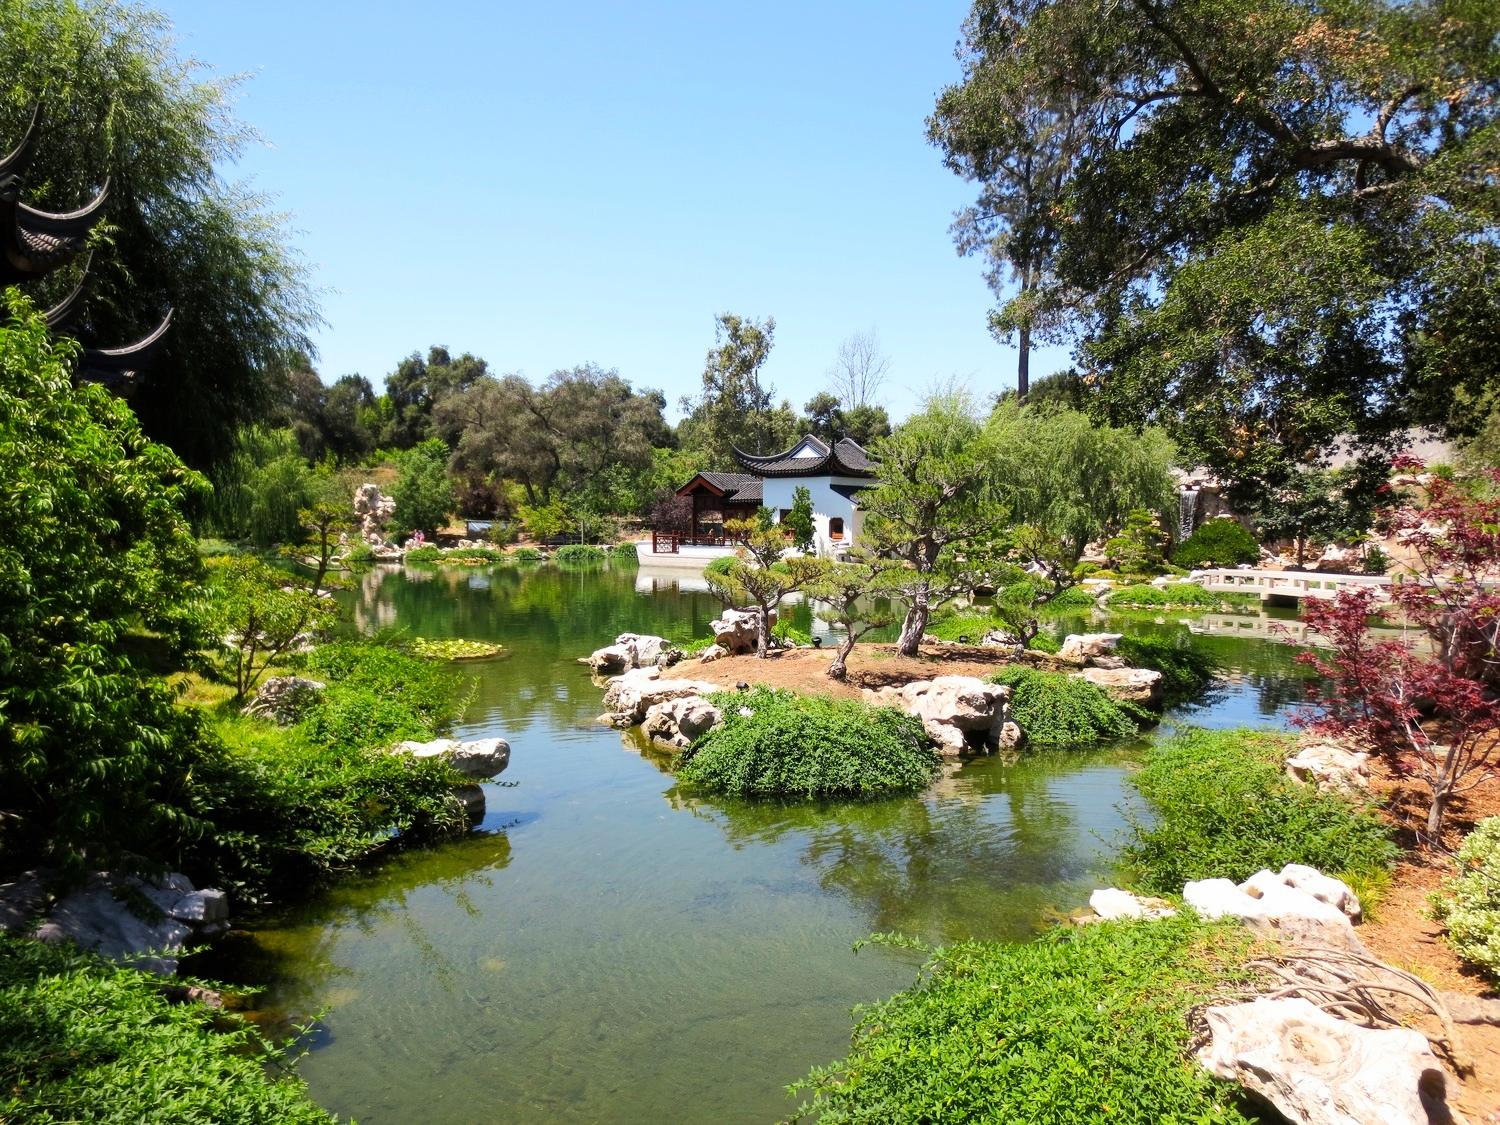 The Chinese Garden at the Huntington Botanical Gardens.